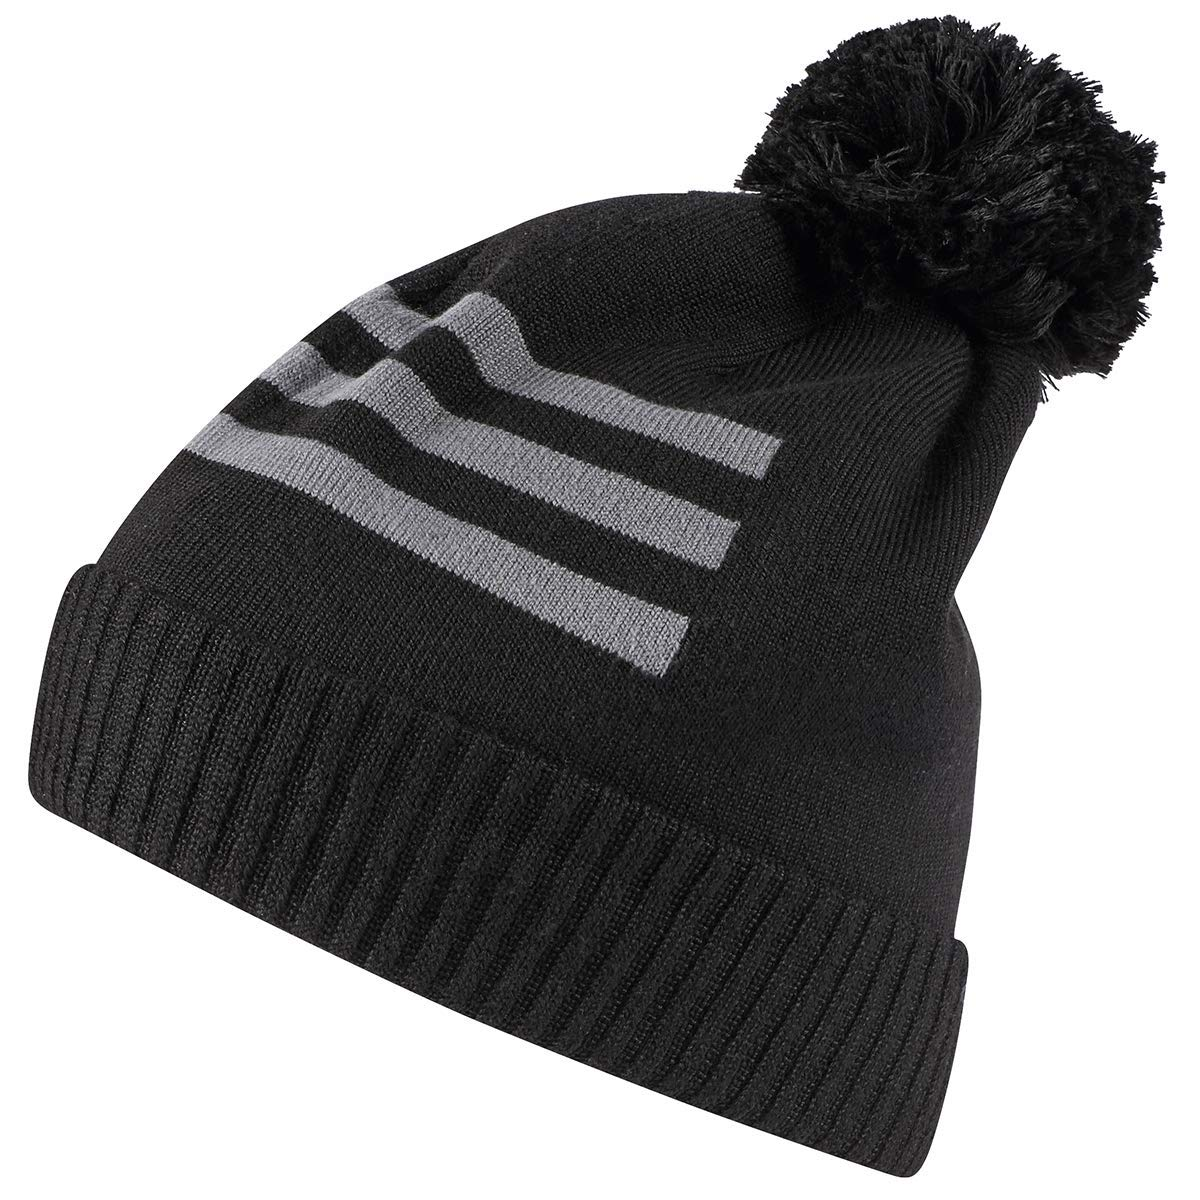 611e74da5ad Amazon.com   adidas Golf 2019 Mens 3-Stripes Pom Pom Winter Golf Beanie Hat  Black   Sports   Outdoors